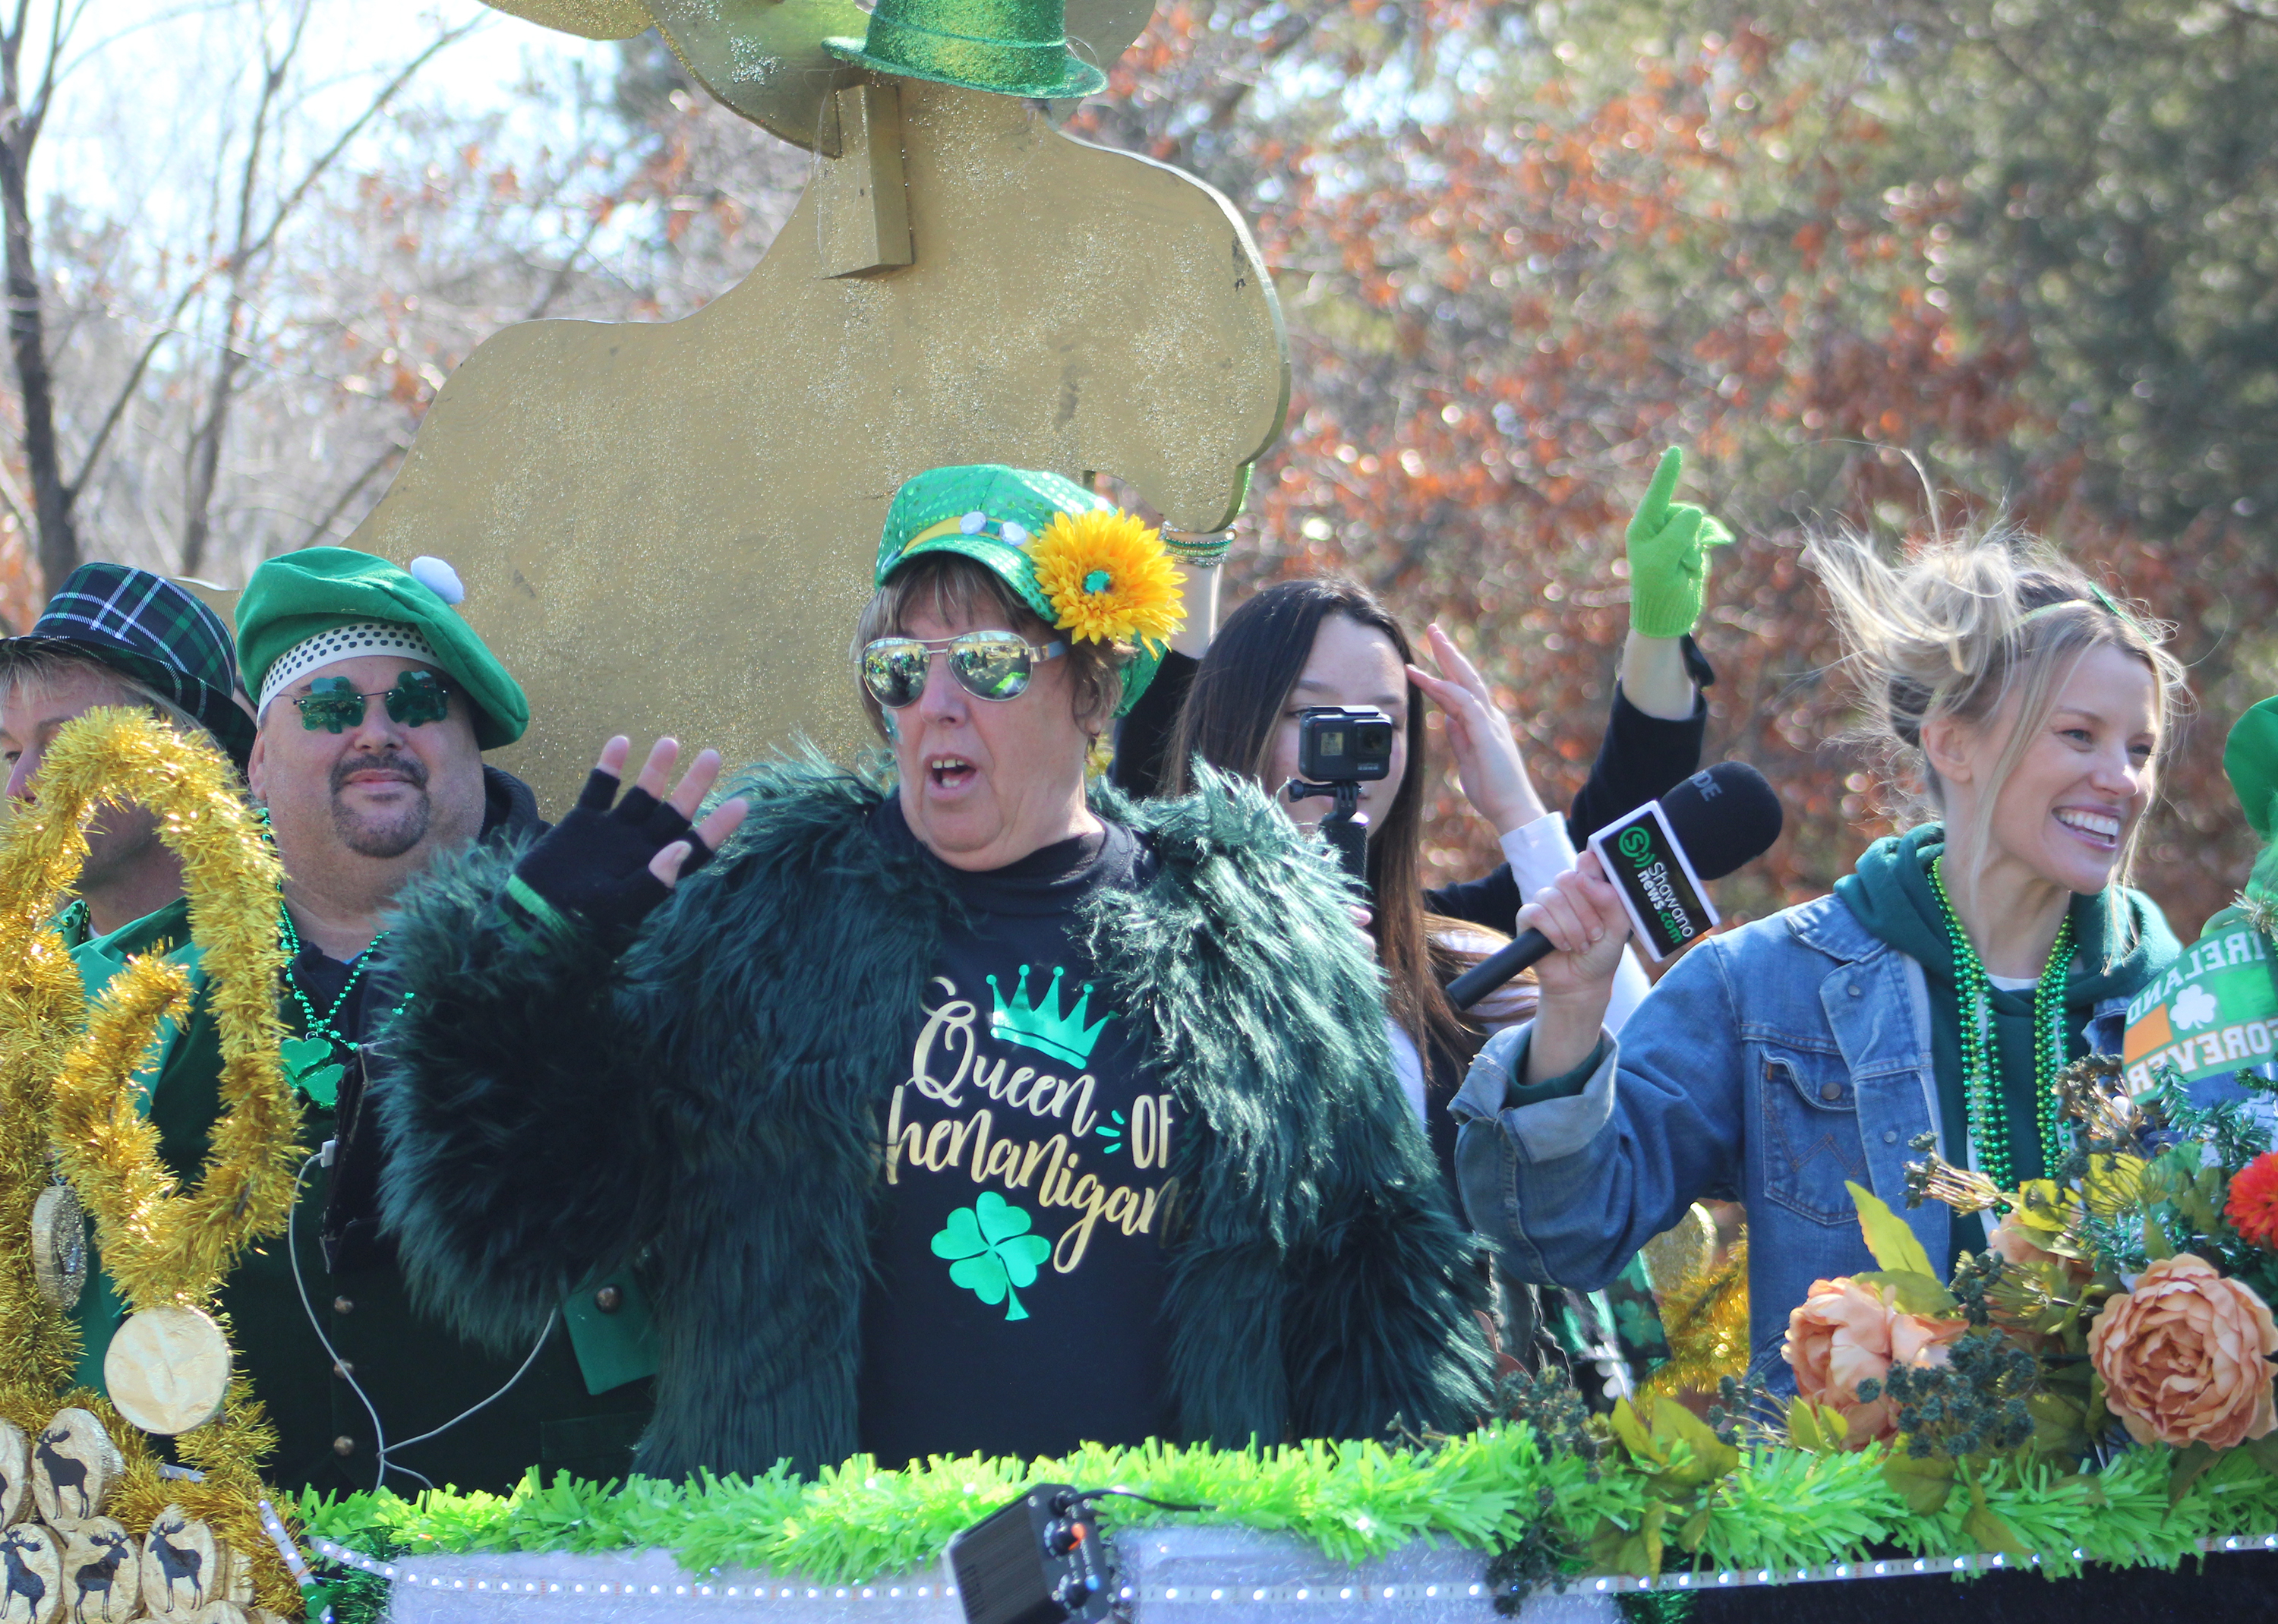 "It's unclear whether shenanigans were going on aboard this float from Just Moose'n Around, despite one of the passengers wearing a shirt that said ""Queen of Shenanigans."" What was clear was that many were having a wonderful time during the Mooseyard St. Patrick's Day Parade on March 13.(Lee Pulaski 